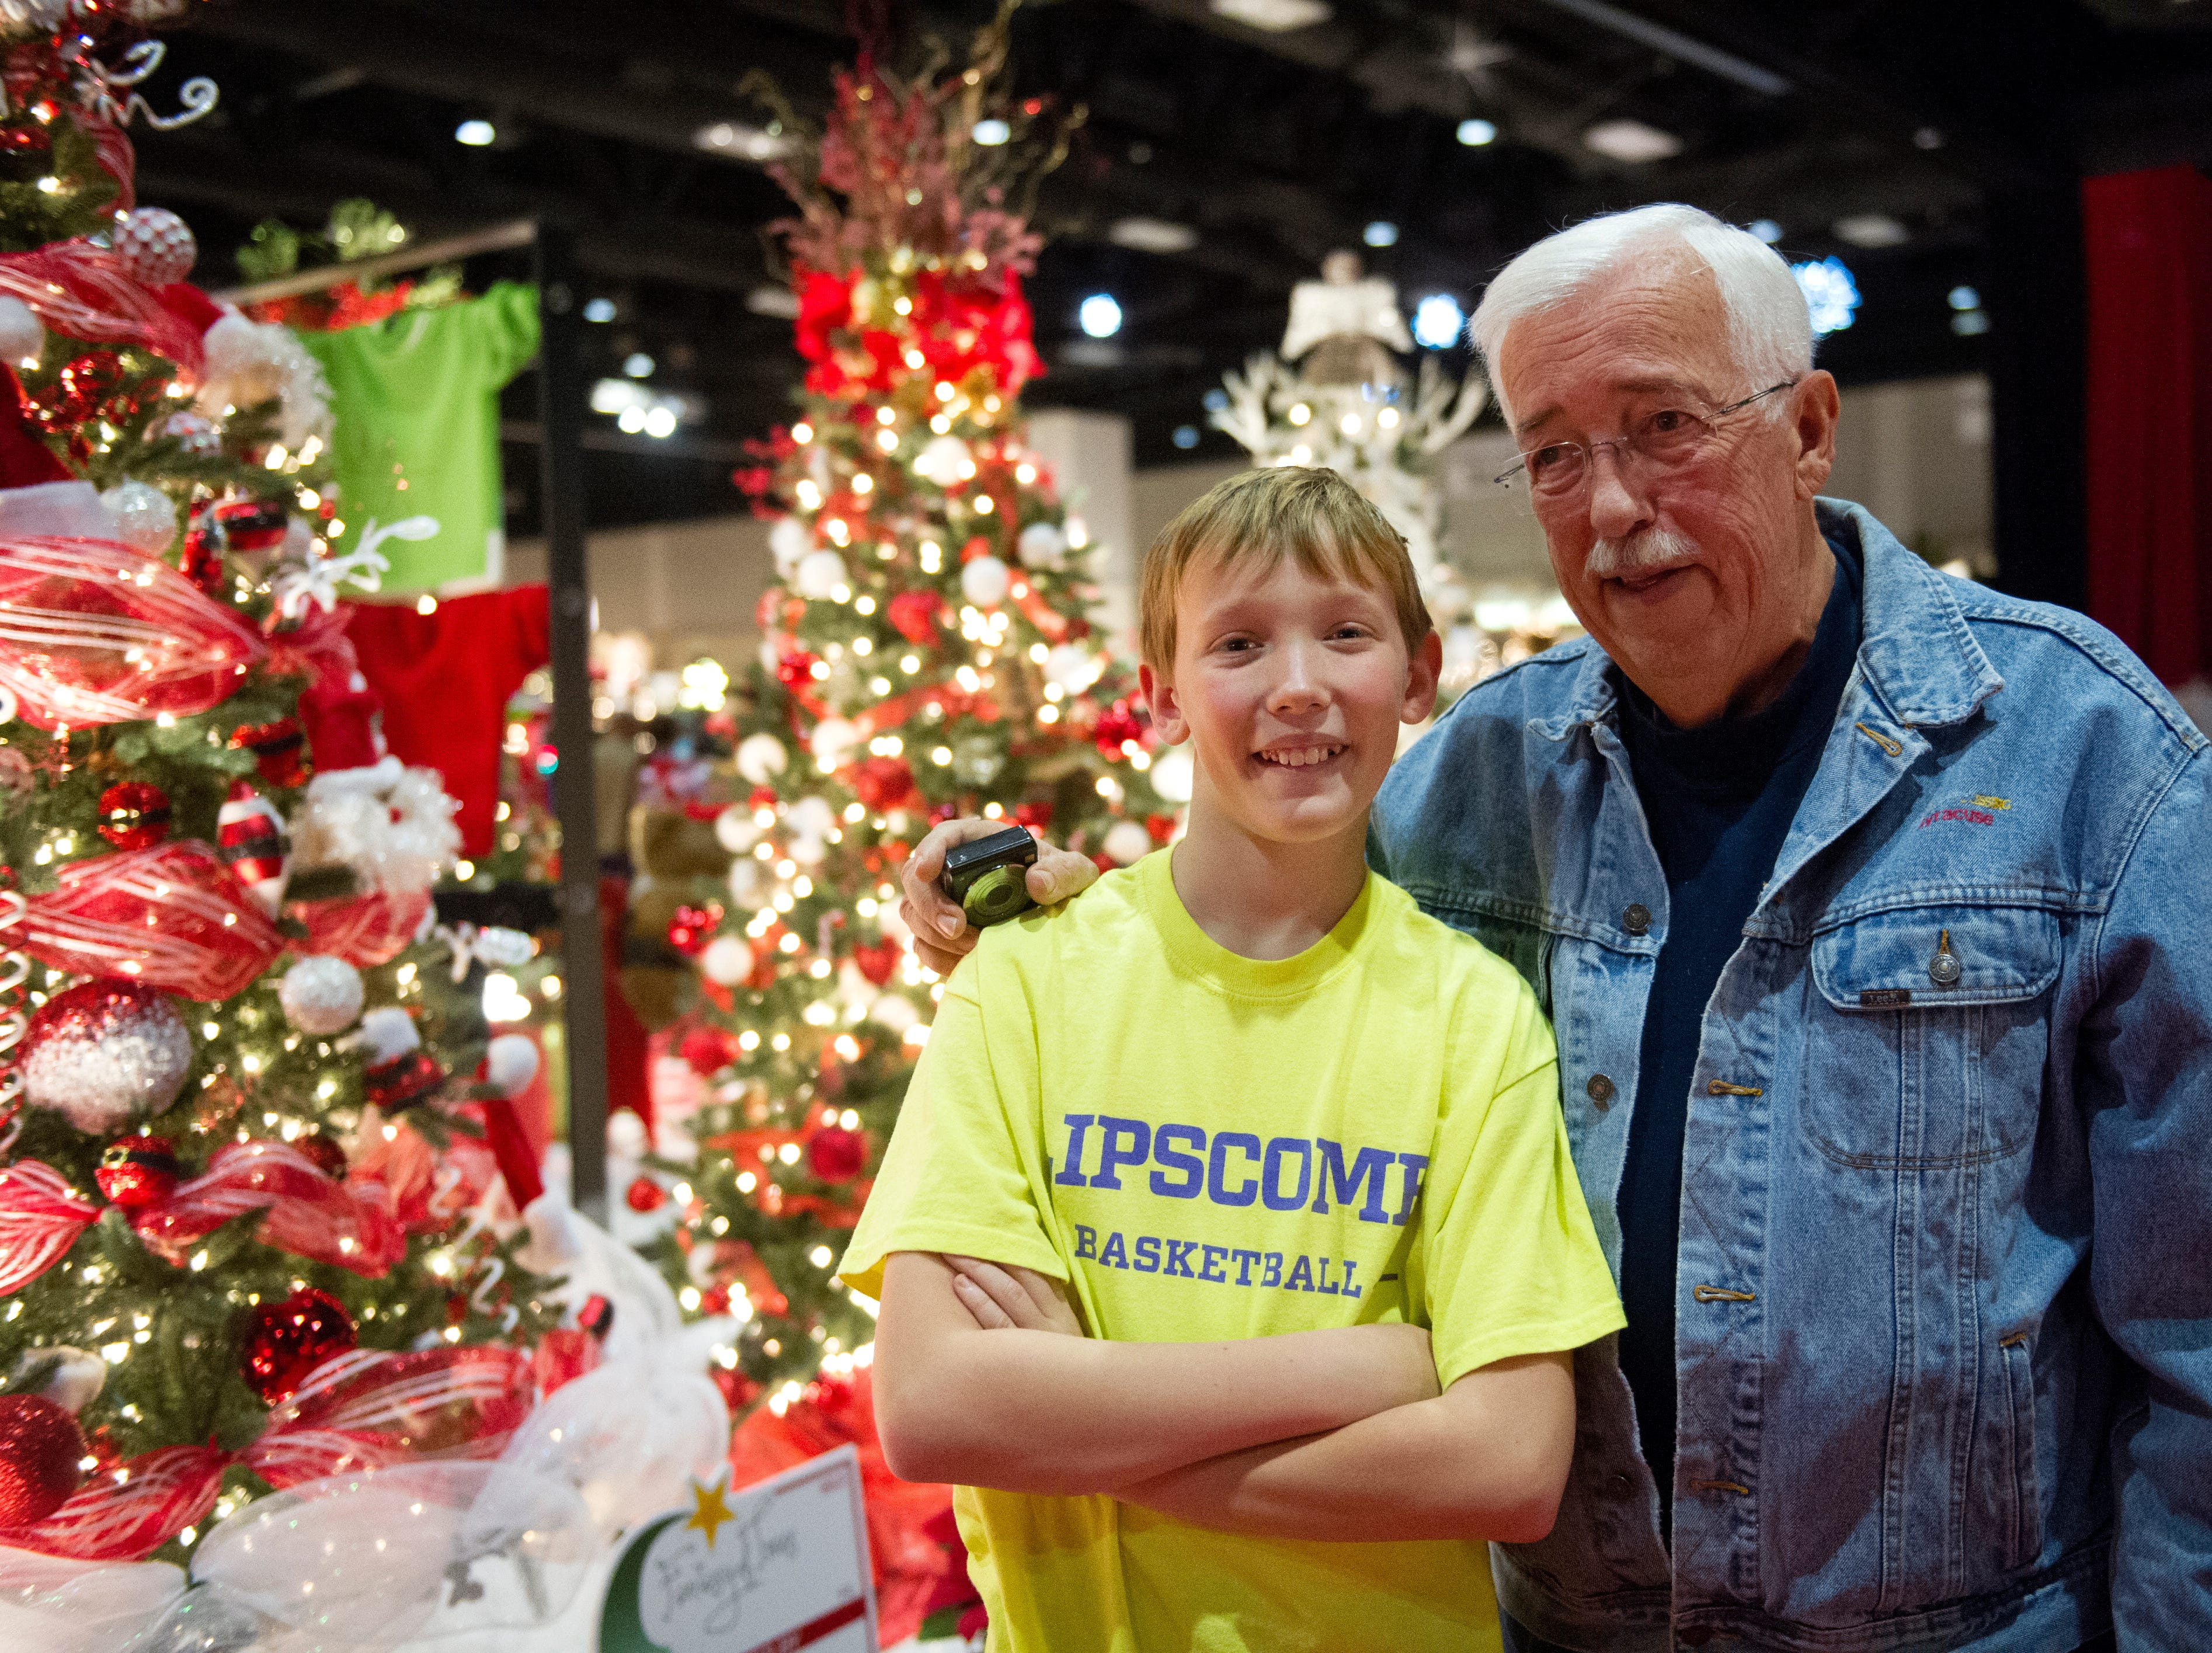 Charlie Lutz of Franklin poses for a photo with his grandfather William Milne of Tellico Village during the Fantasy of Trees at the Knoxville Convention Center Wednesday, Nov. 25, 2015. (JESSICA TEZAK/NEWS SENTINEL)